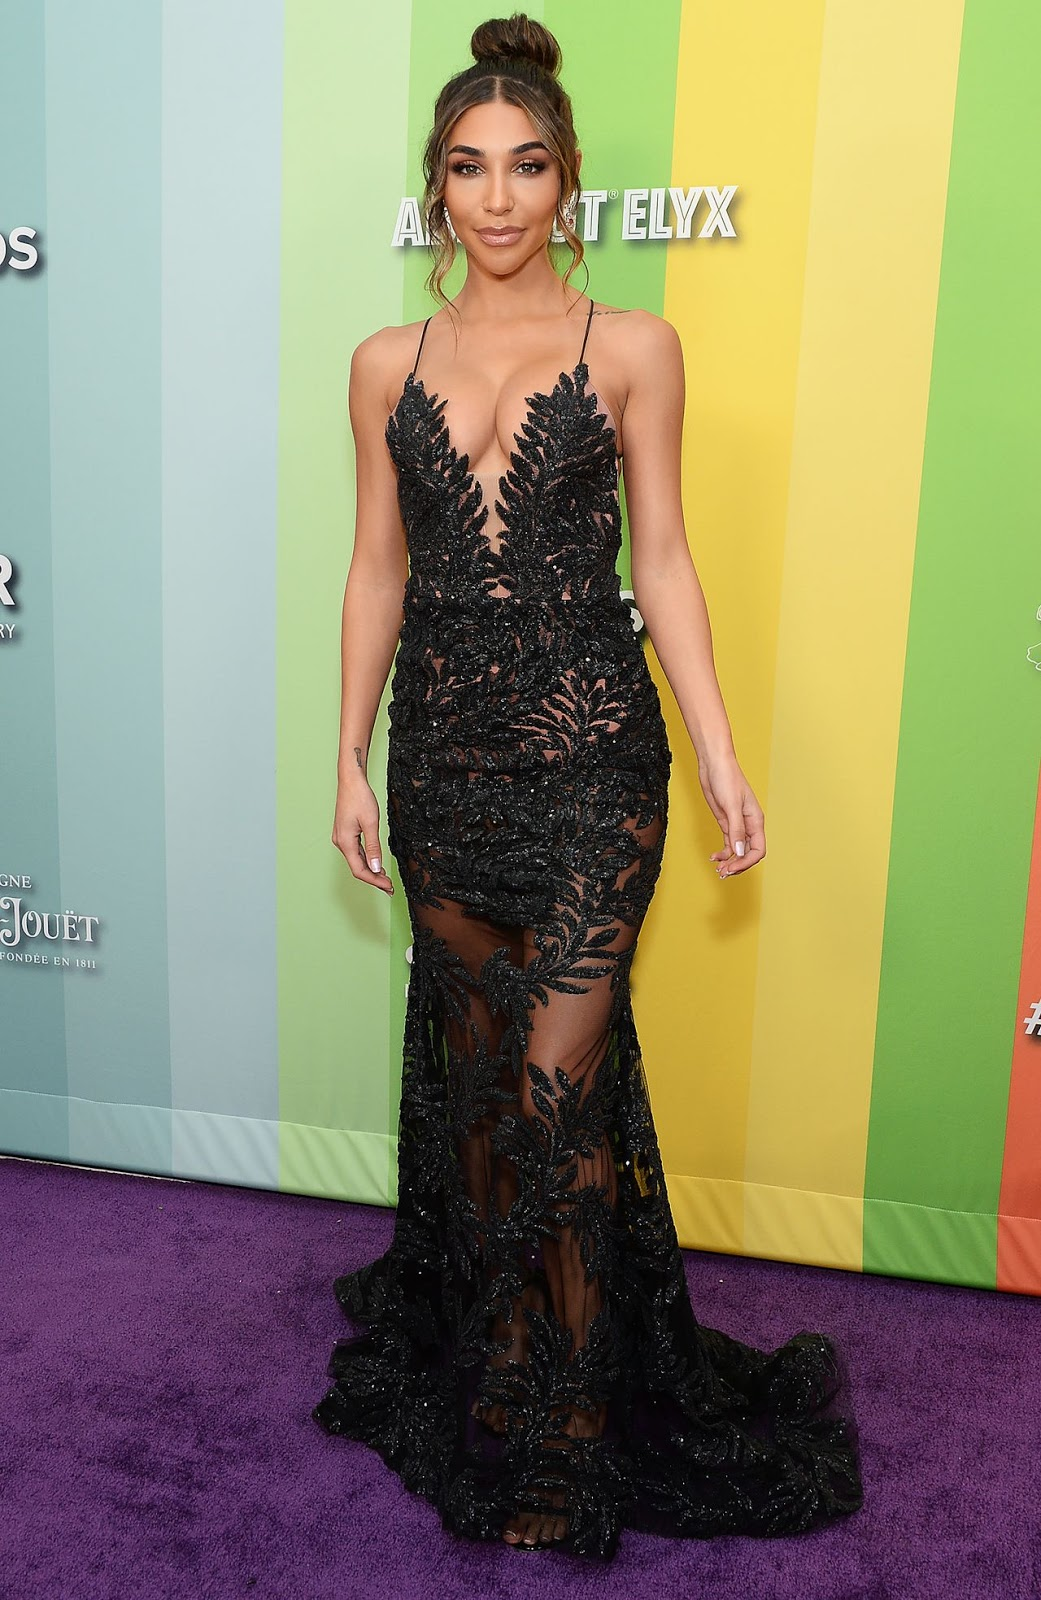 Chantel Jeffries flaunts her cleavage in glittering sheer black gown while walking the red carpet at amfAR gala